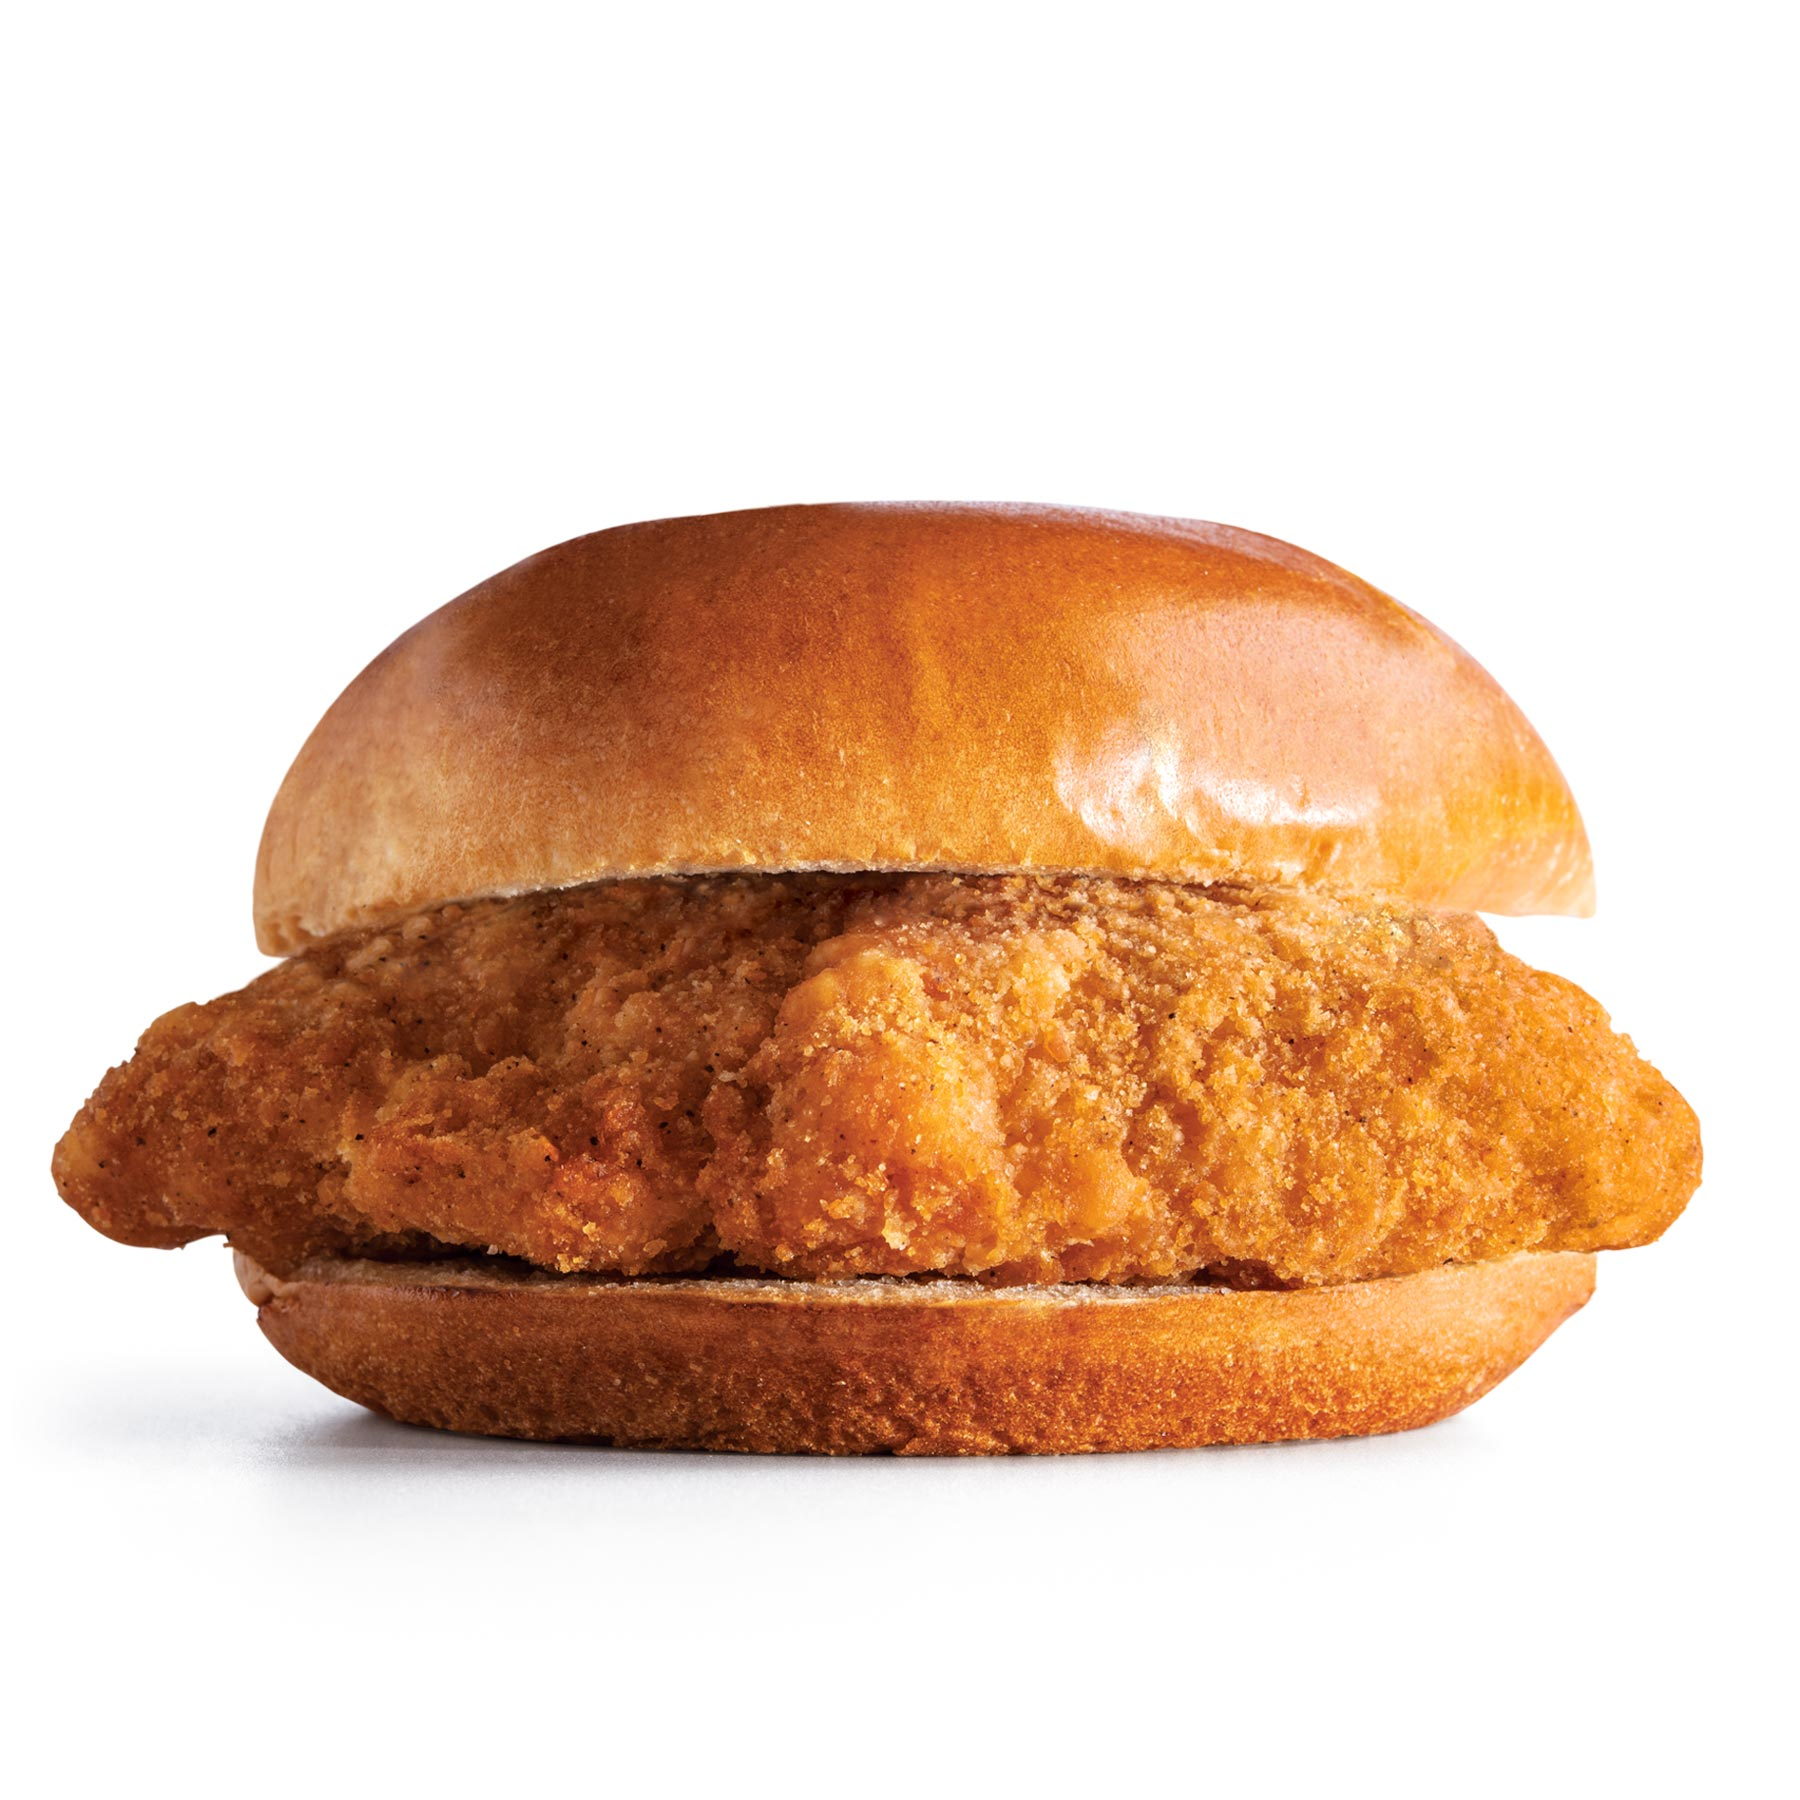 7-Eleven's Chicken Sandwich, a hot meal on the go.